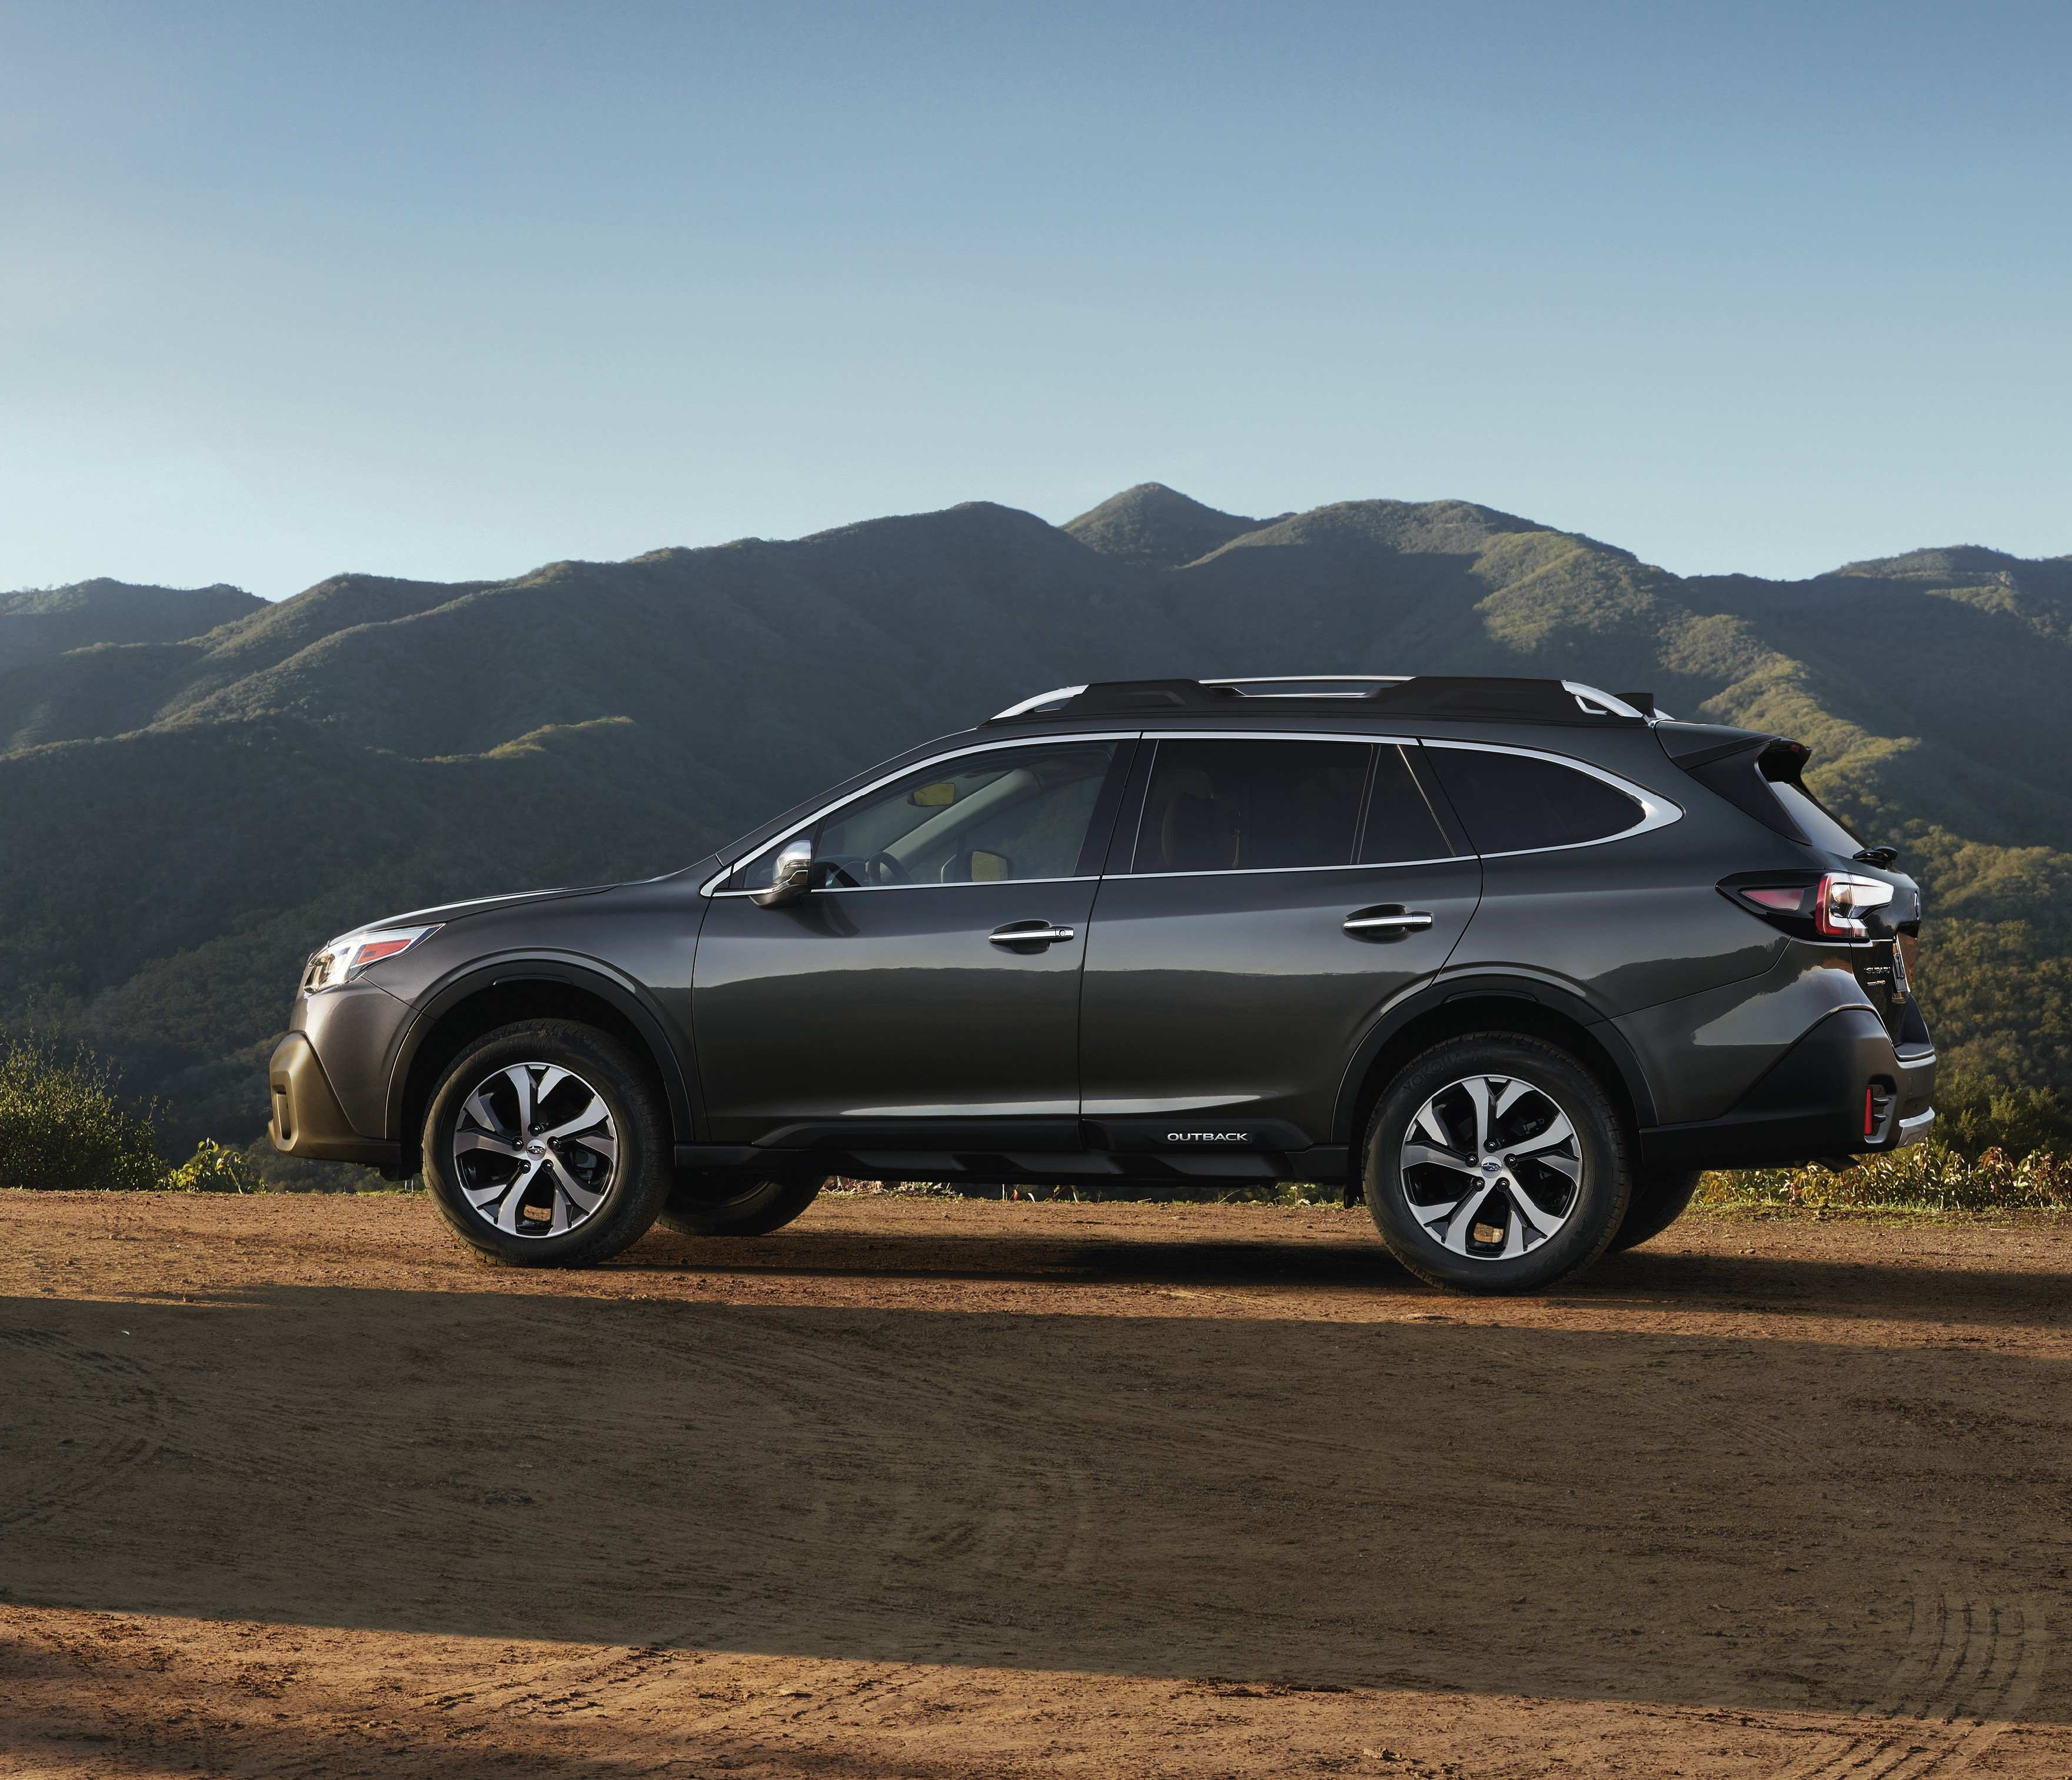 76 Great Subaru Plans For 2020 Speed Test by Subaru Plans For 2020